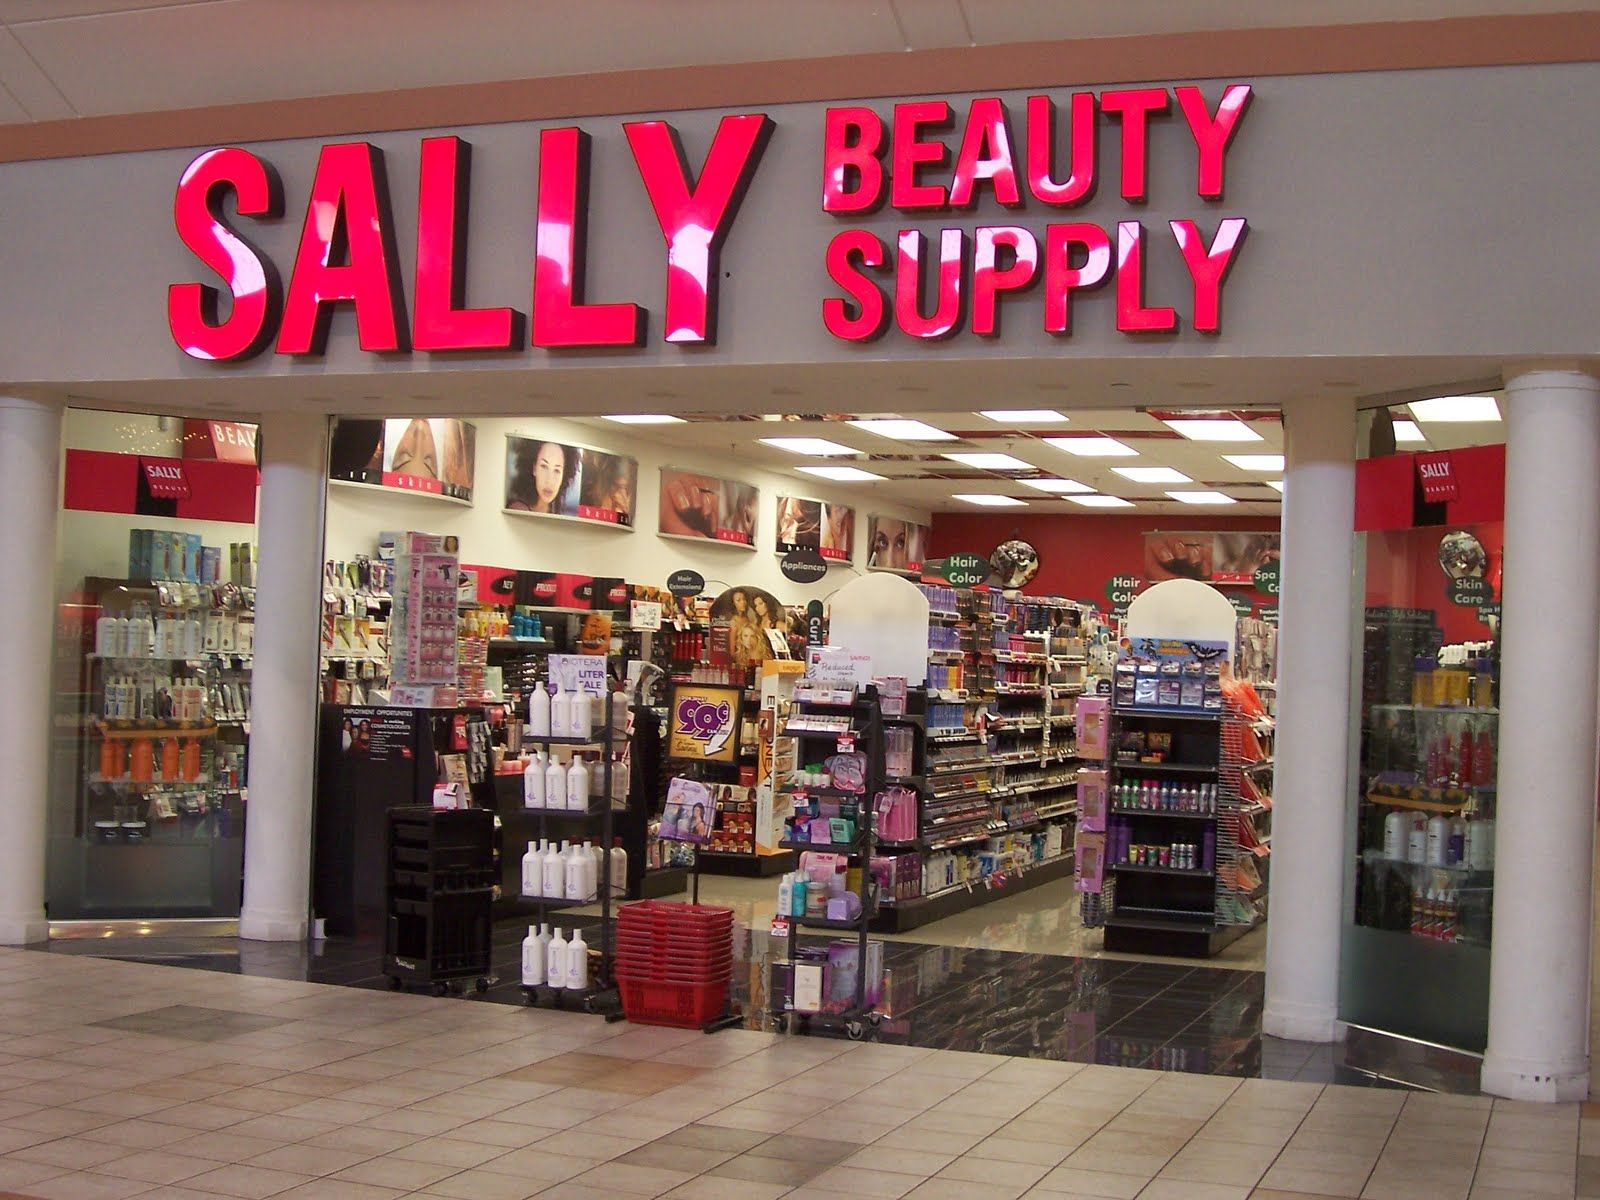 Ballin' on a Budget!: Sally Beauty Supply | I whip my hair | Sally